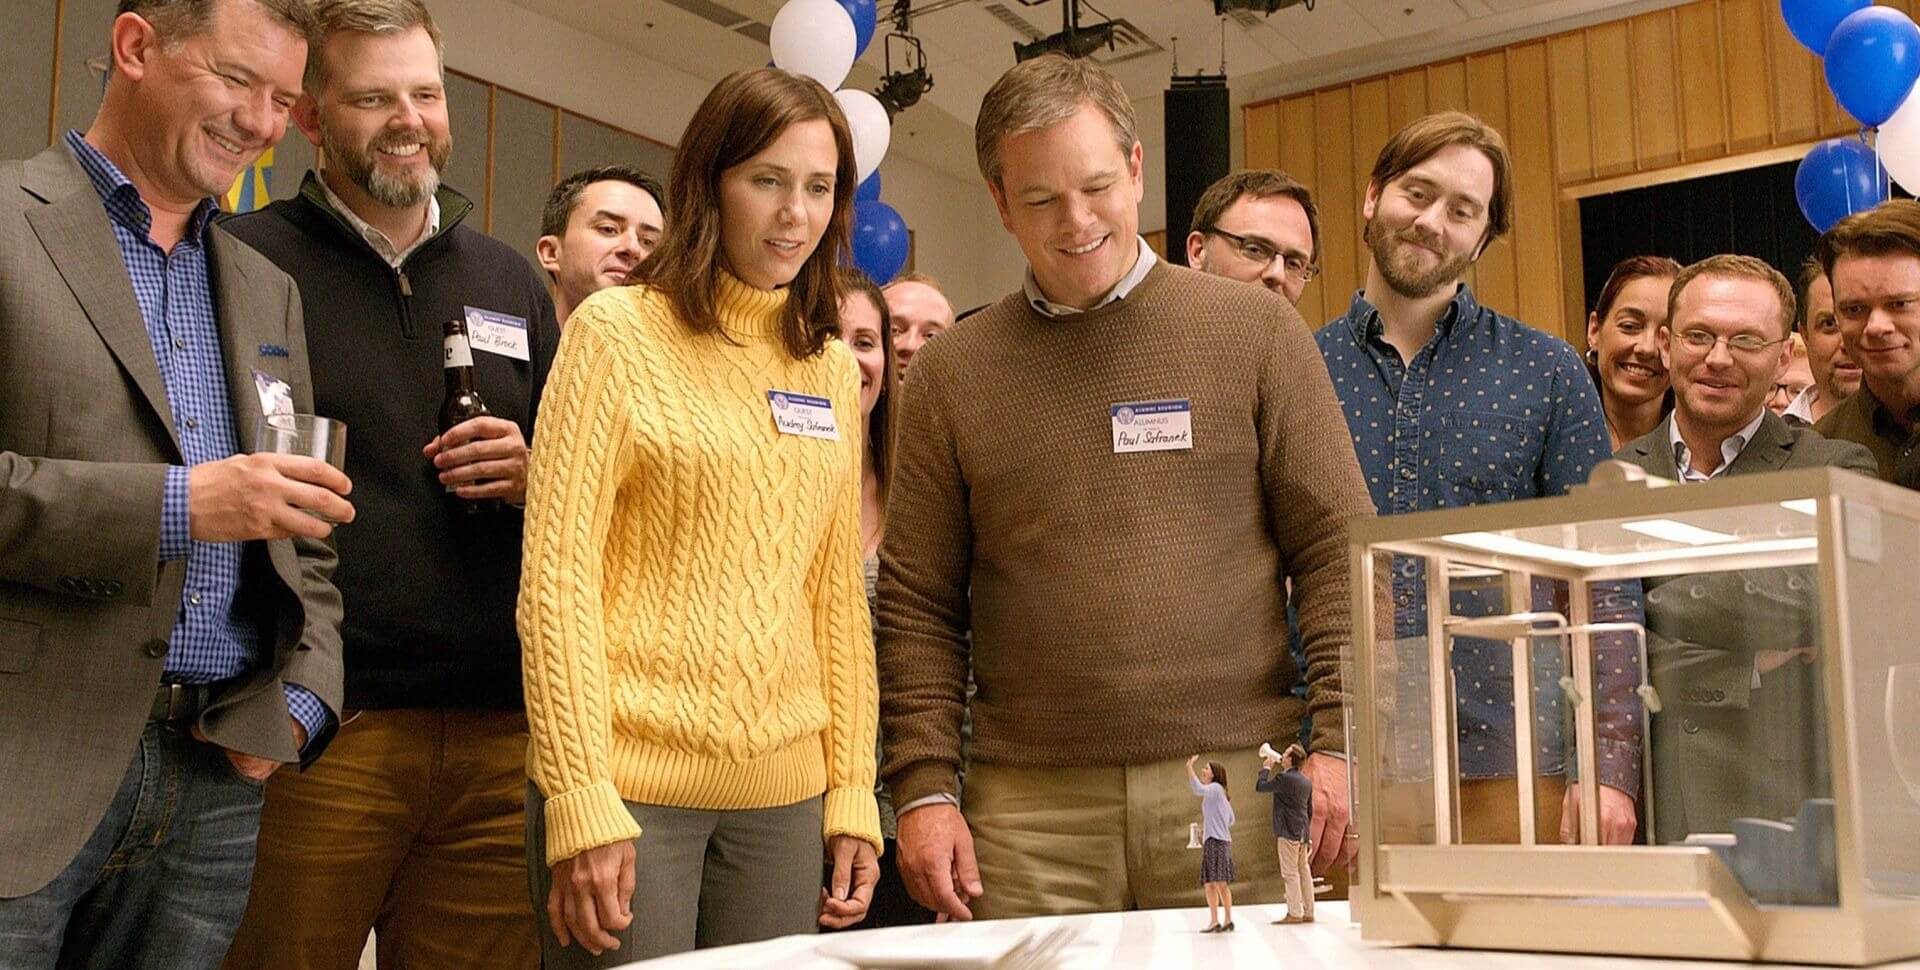 Downsizing 2017 Movie Review